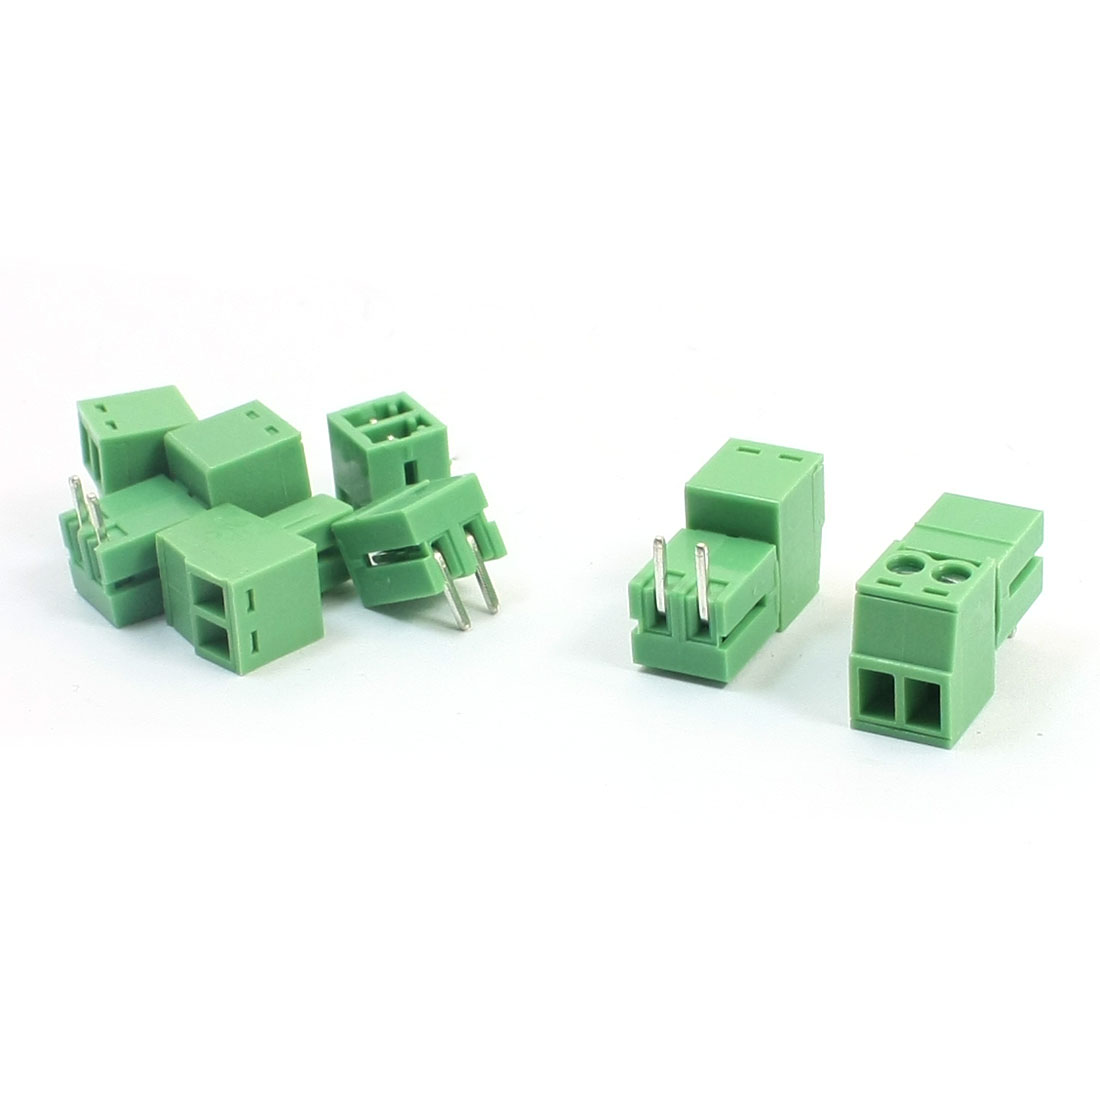 5Pcs 3.5mm 2-Position Pluggable in Type Through Hole Mounting PCB Screw Terminal Barrier Block Connector